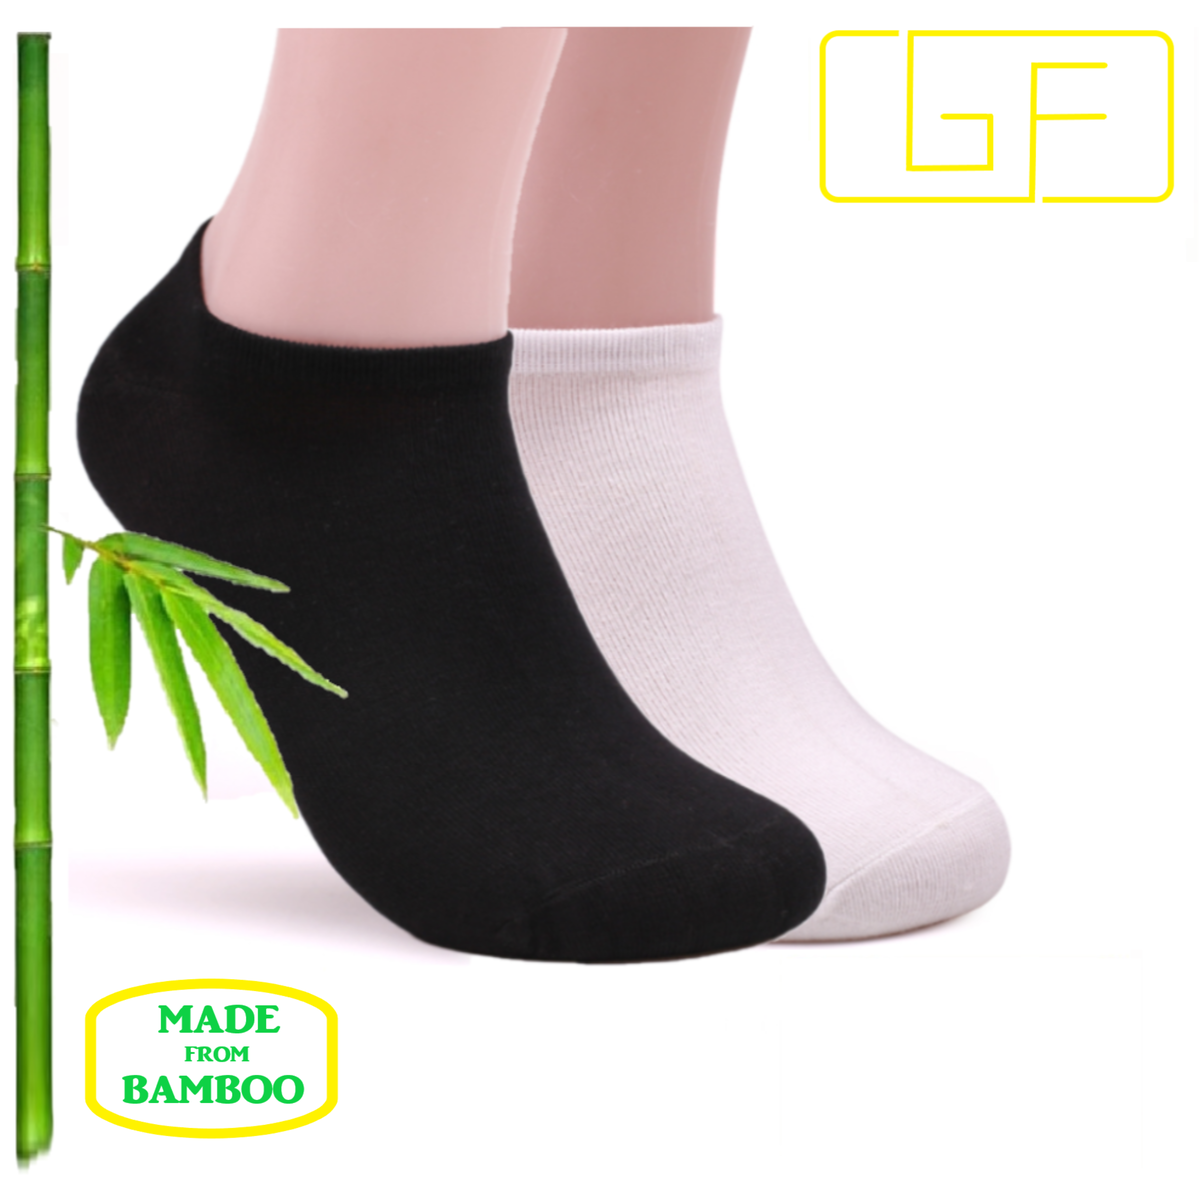 5 Pairs of Low Cut Bamboo socks, Black and White, Man and Woman, Size 8-12